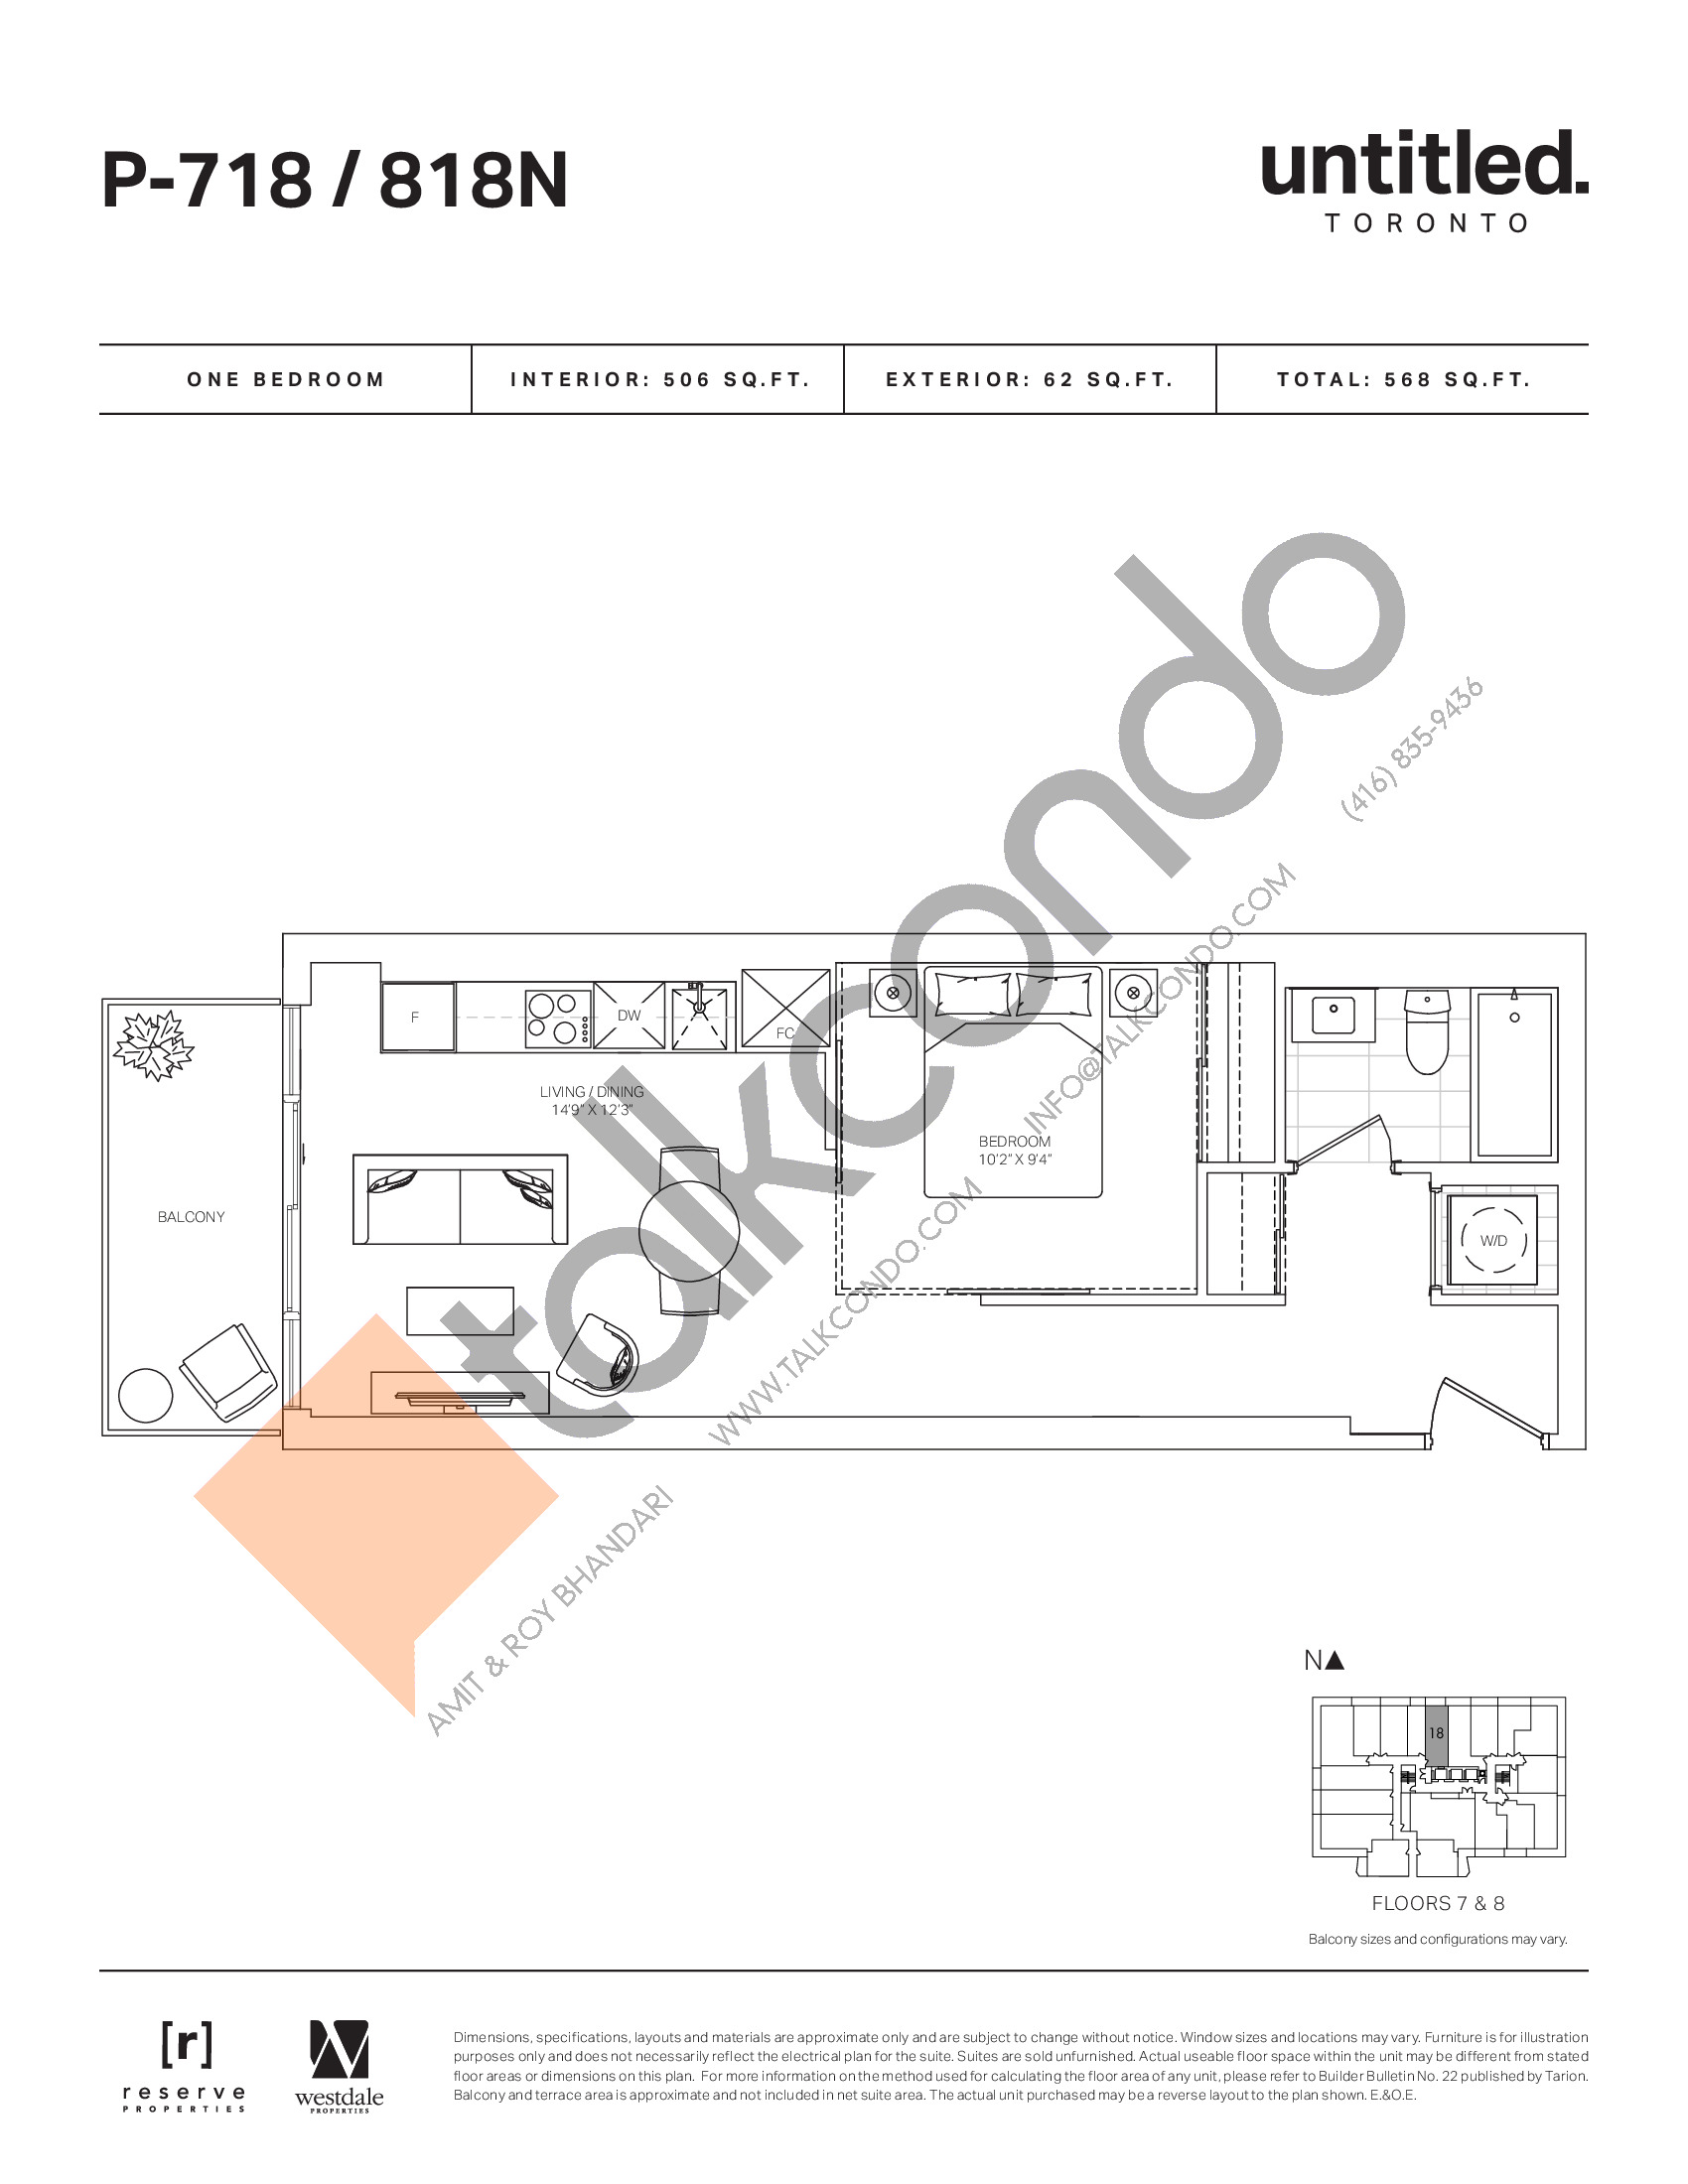 P-718 / 818N Floor Plan at Untitled North Tower Condos - 506 sq.ft